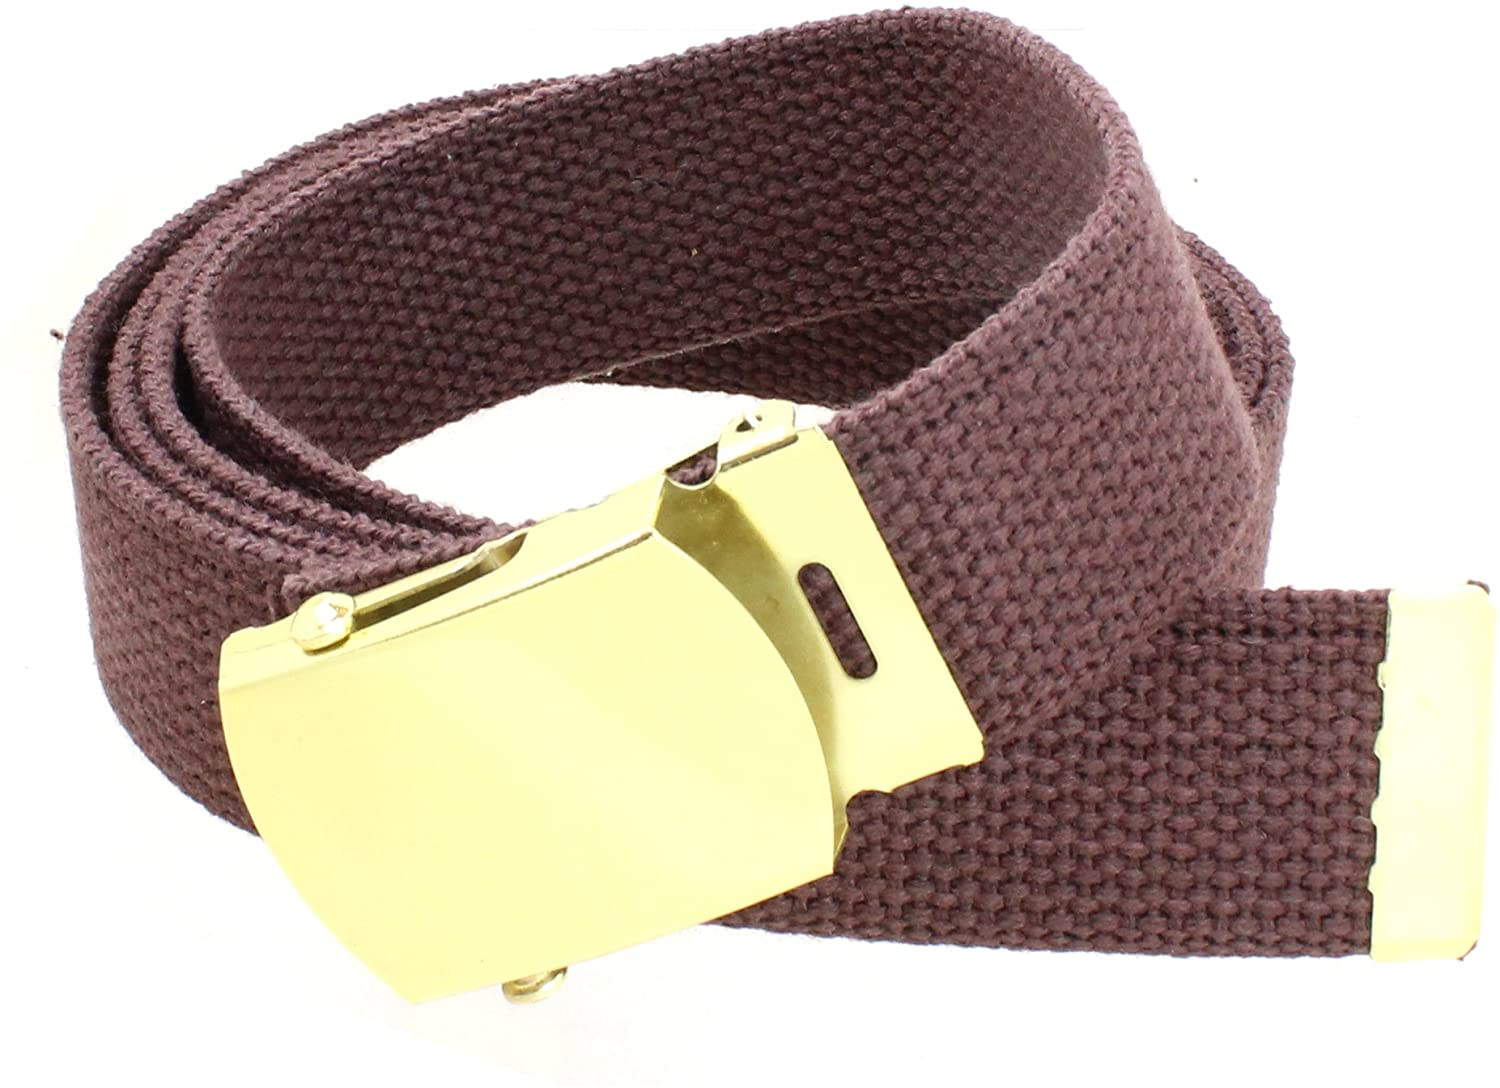 Canvas Web Belt Military Style with Brass Buckle and Tip 54 Long Many Colors